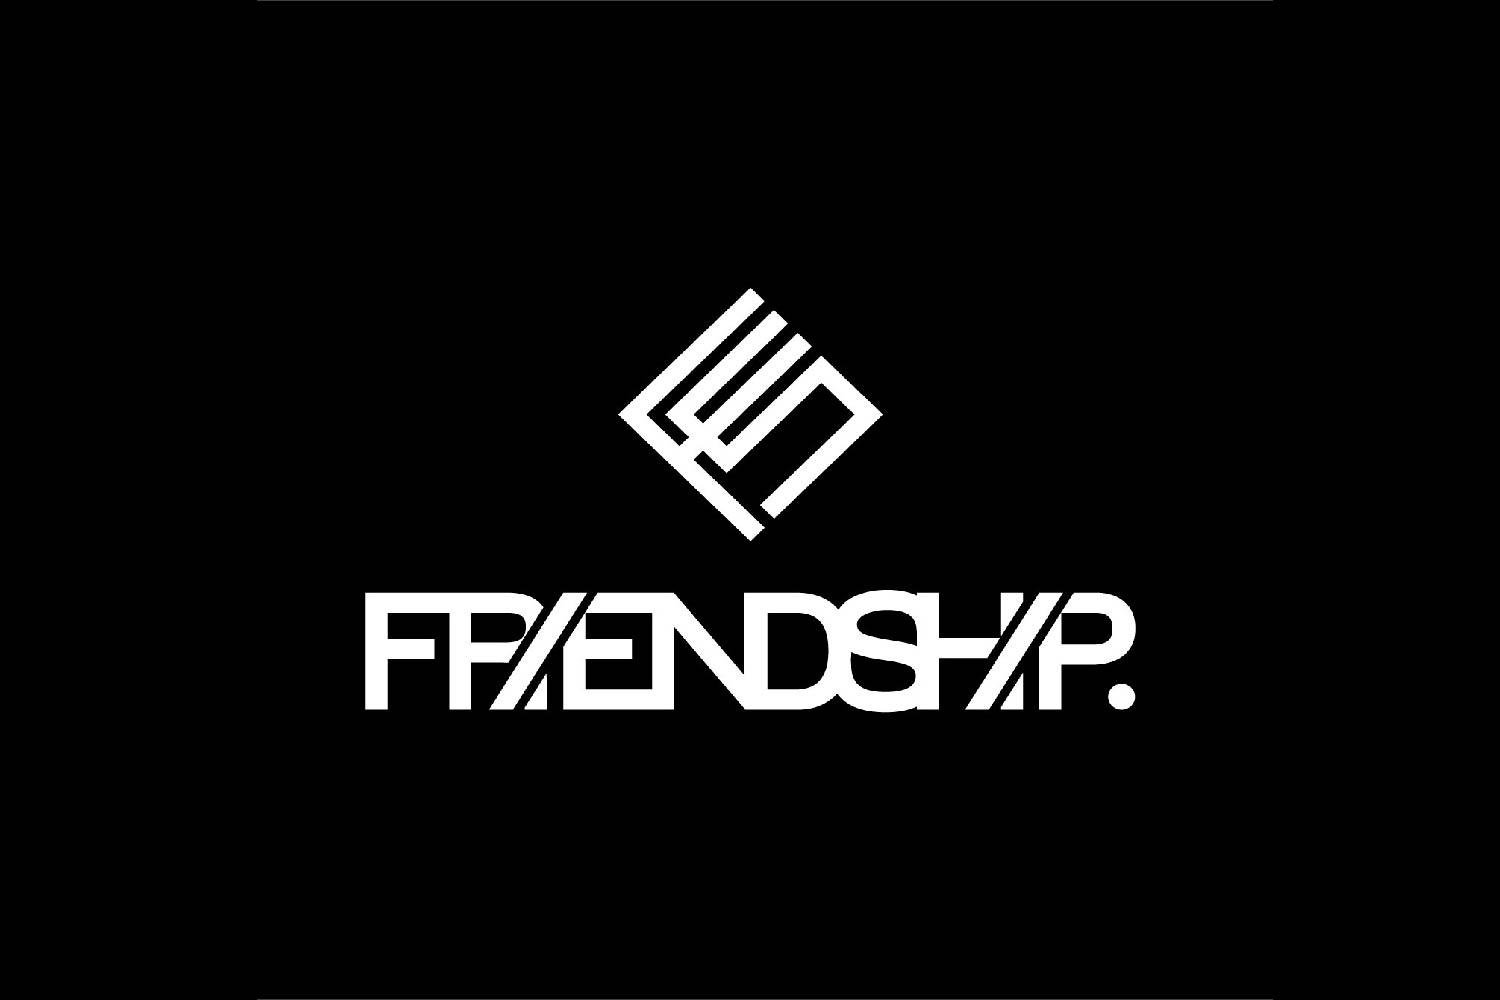 SENSA PICK UP!FRIENDSHIP.配信アーティストMovie紹介 -Vol.3-